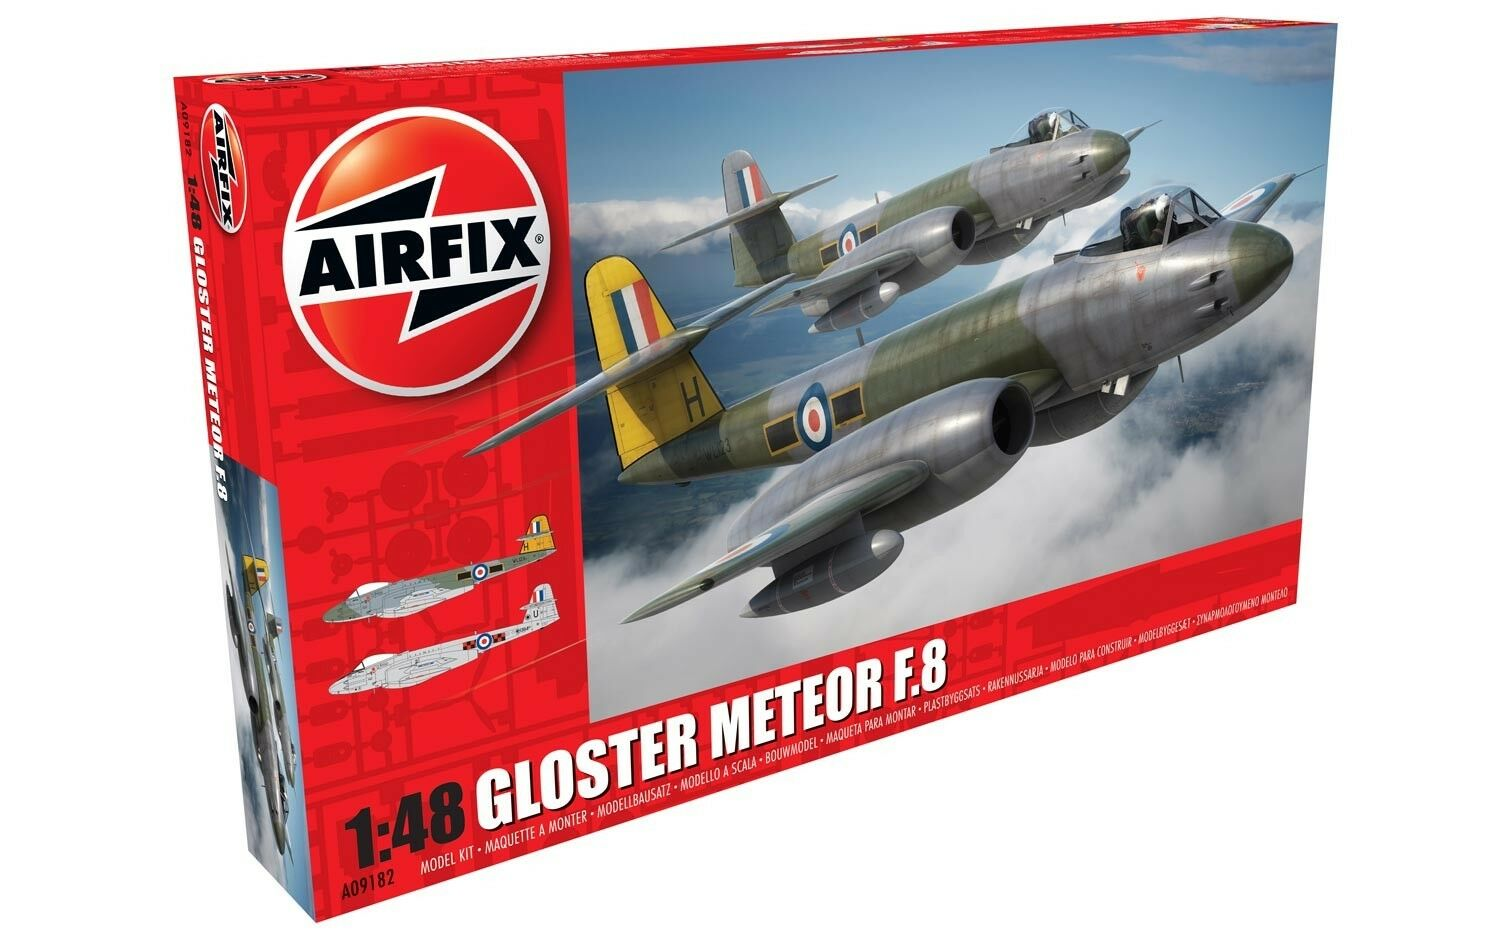 AIRFIX A09182 GLOSTER METEOR F8  1 48